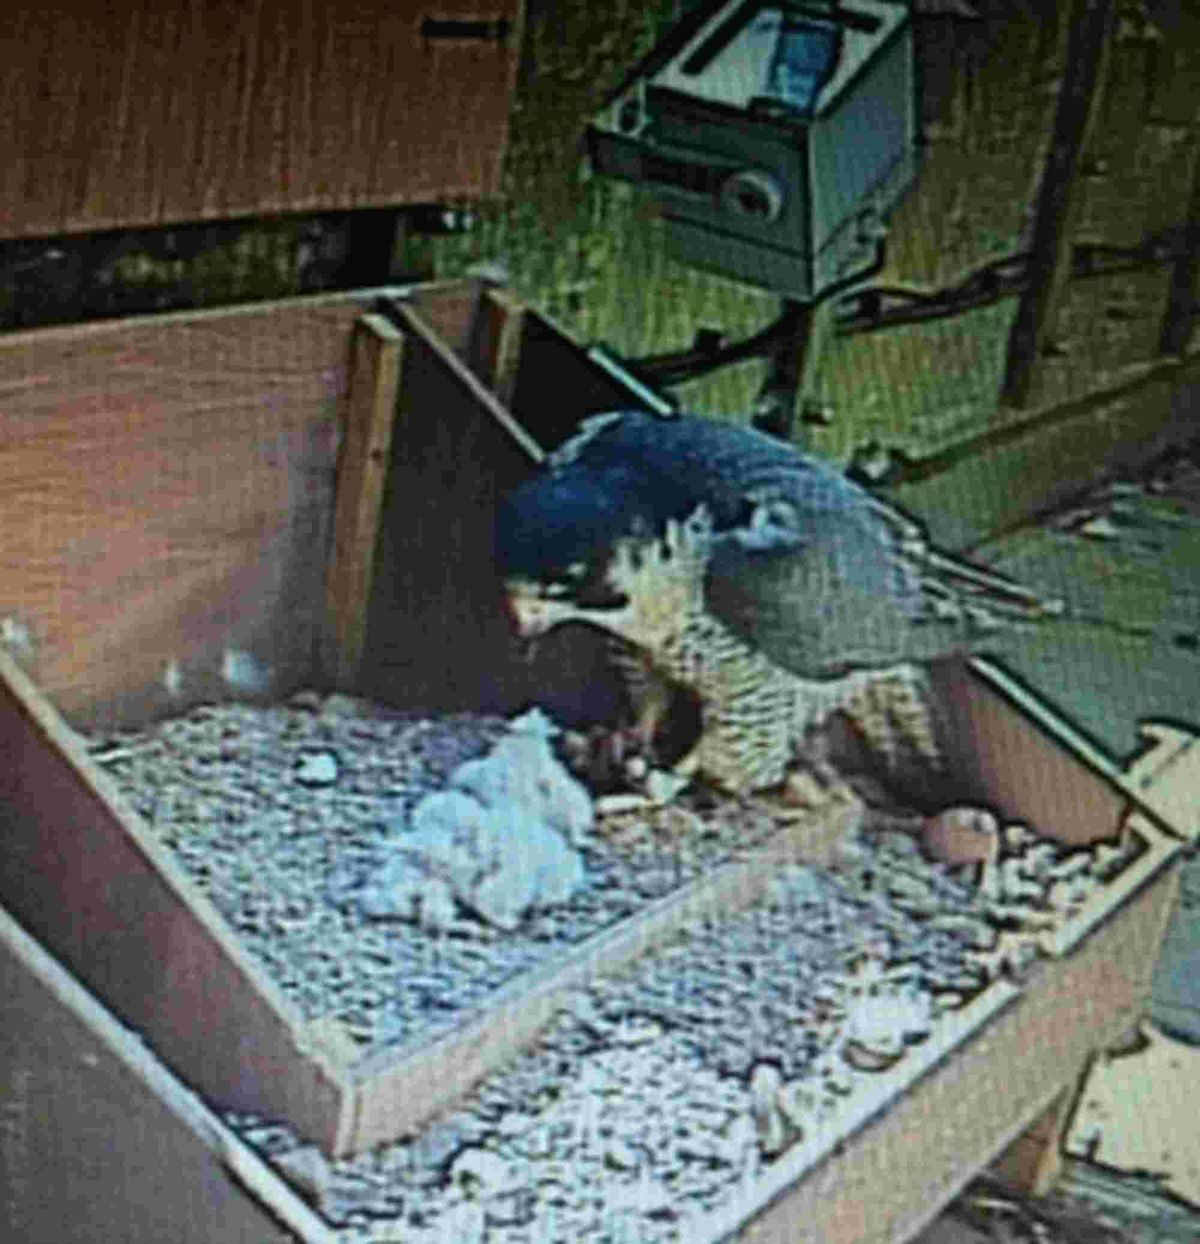 Peregrine chicks hatch at cathedral